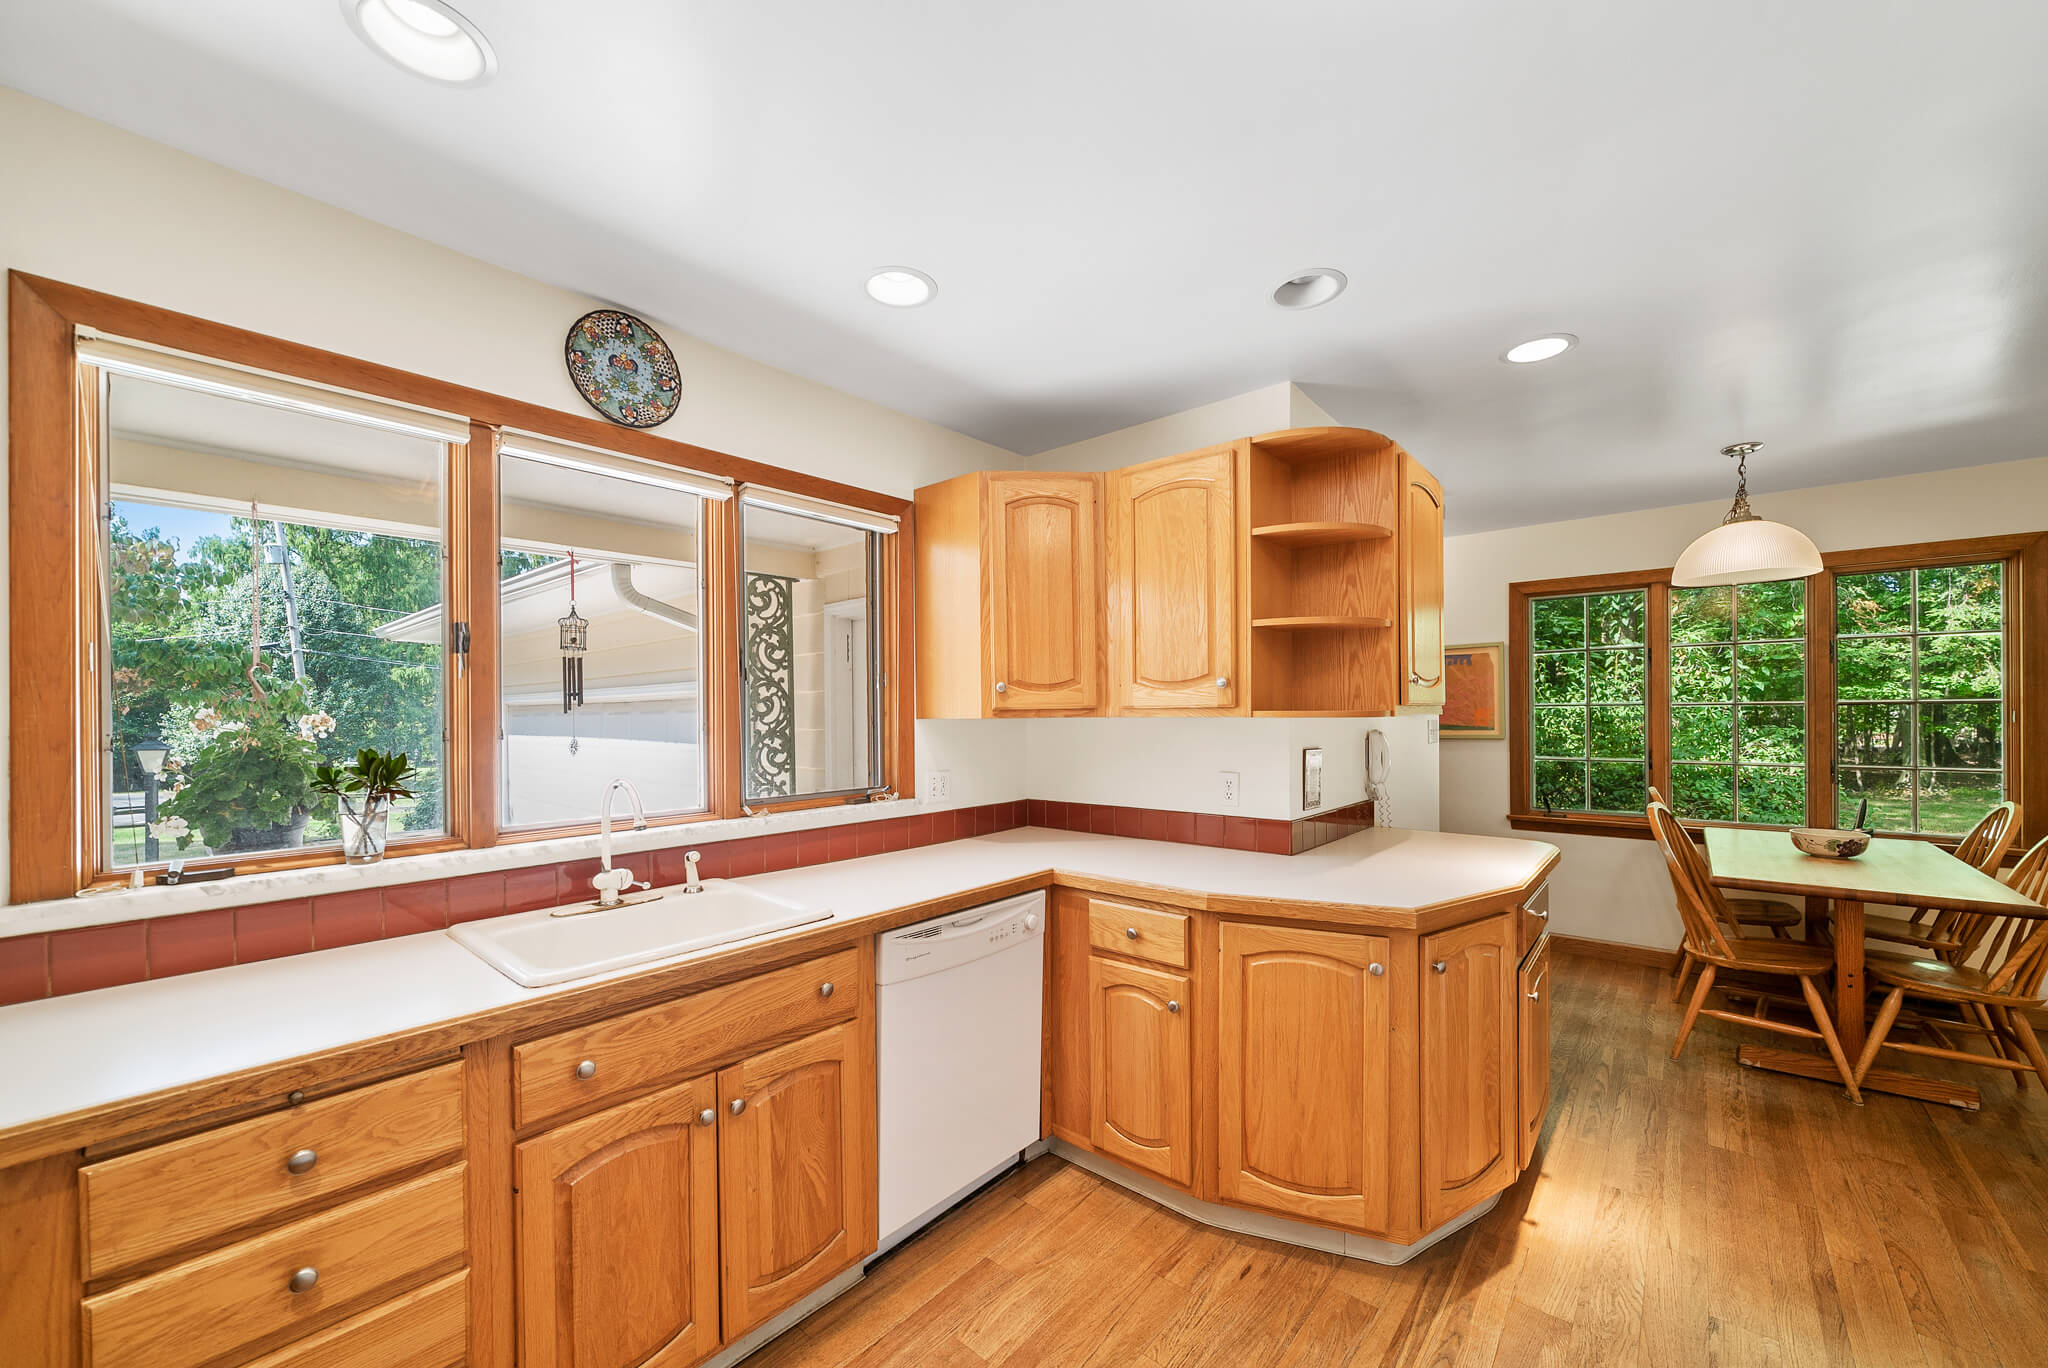 Oak cabinetry and abundant light at 4349 Orandale Dr in Chagrin Falls